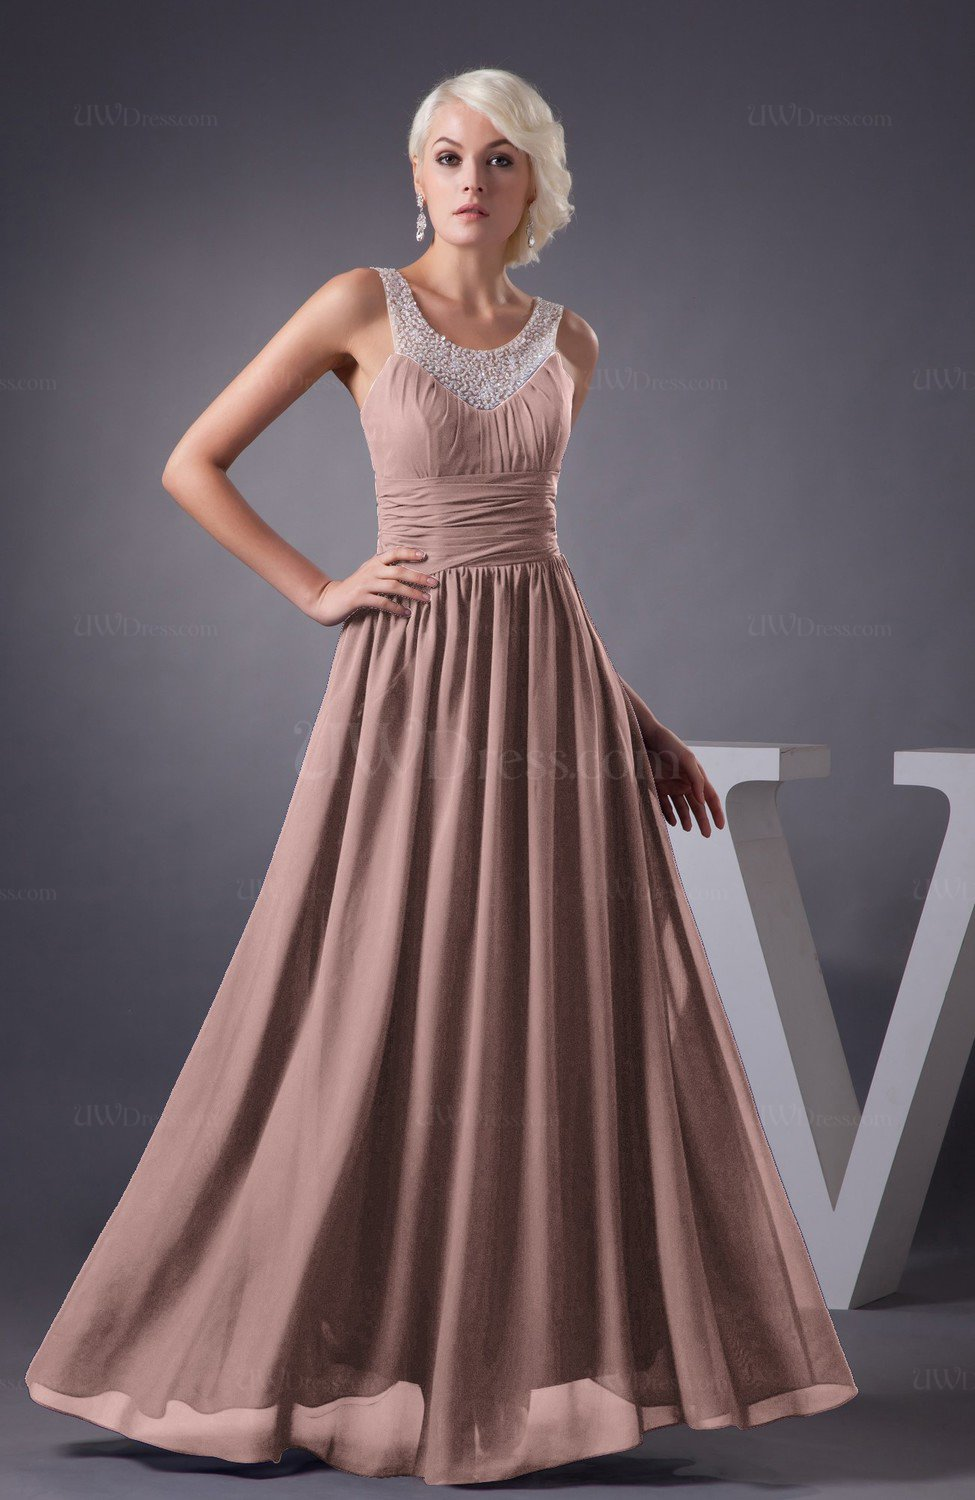 Bridal Rose Chiffon Bridesmaid Dress Country Chic Summer Simple Plus Size Western (Style D10756)